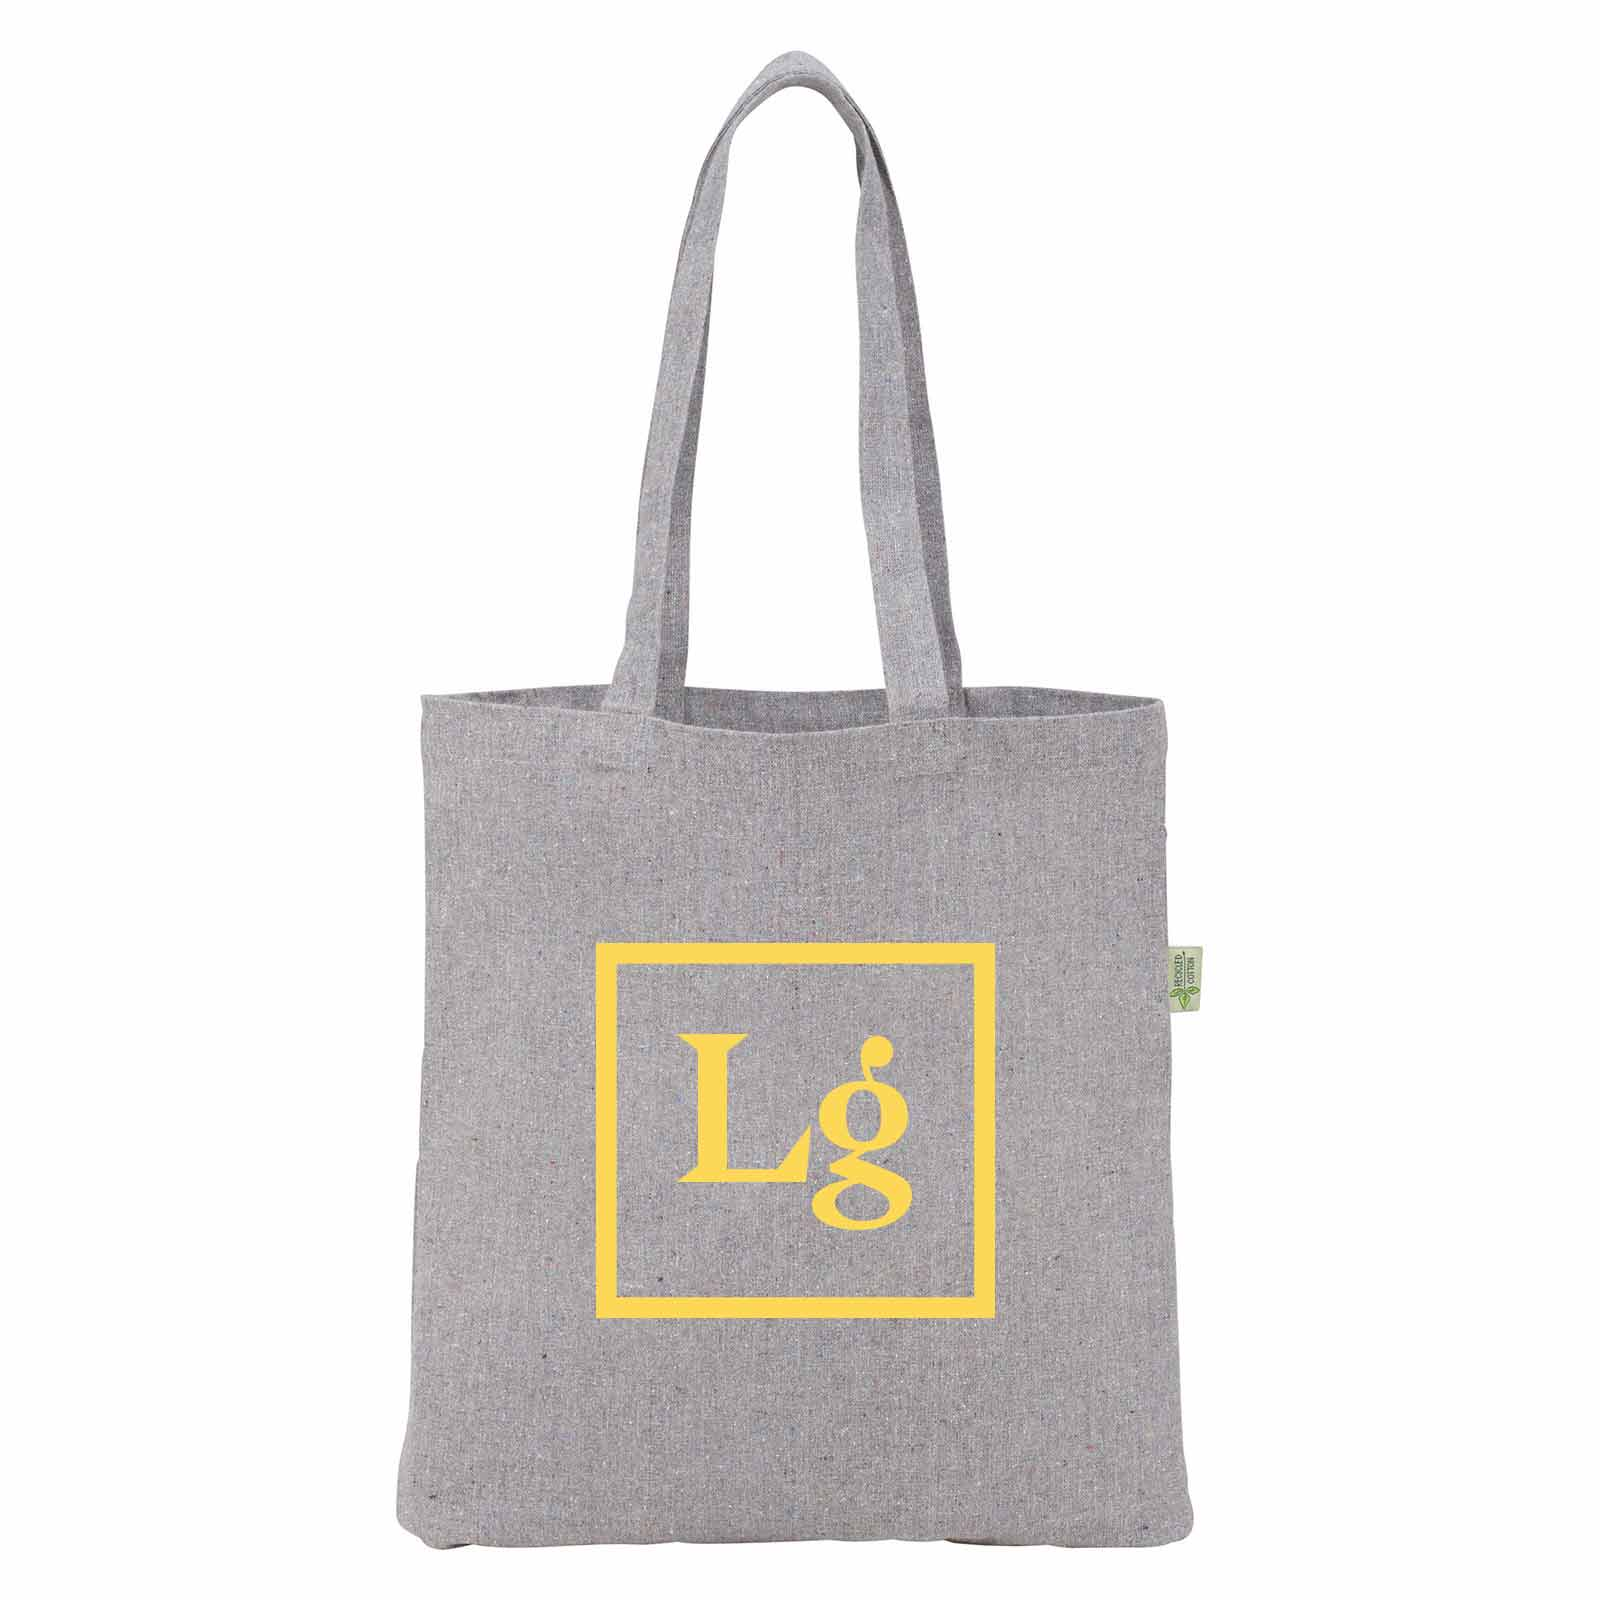 199795 speckled recycled cotton tote one color one location imprint